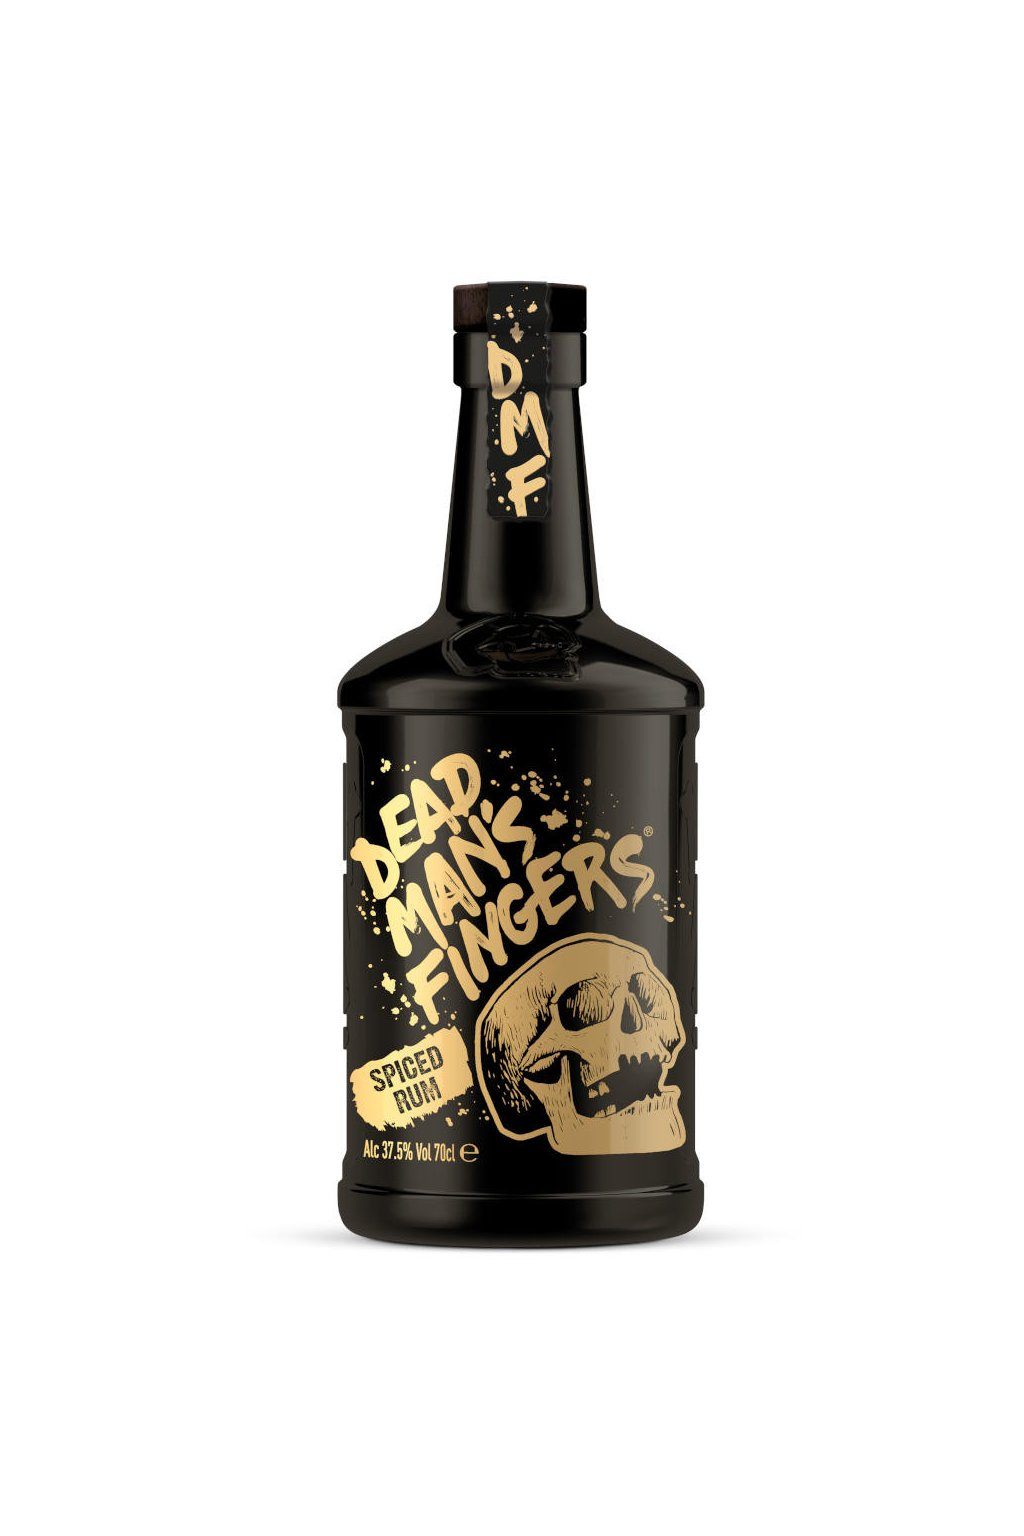 dead mans fingers spiced 1529737 s508